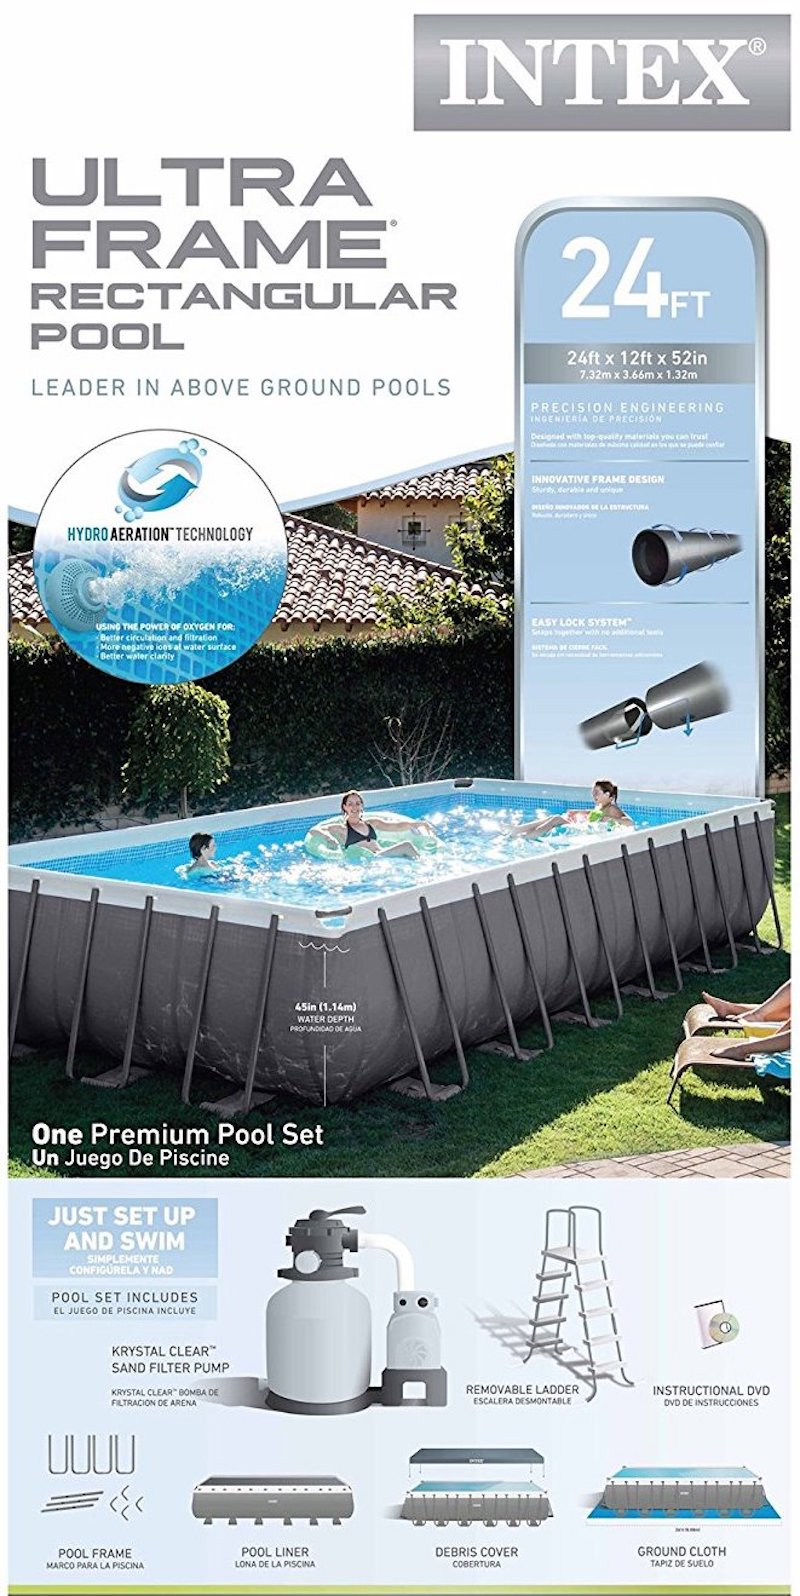 Dorable intex ultra frame pools images picture frame for Buying an above ground pool guide